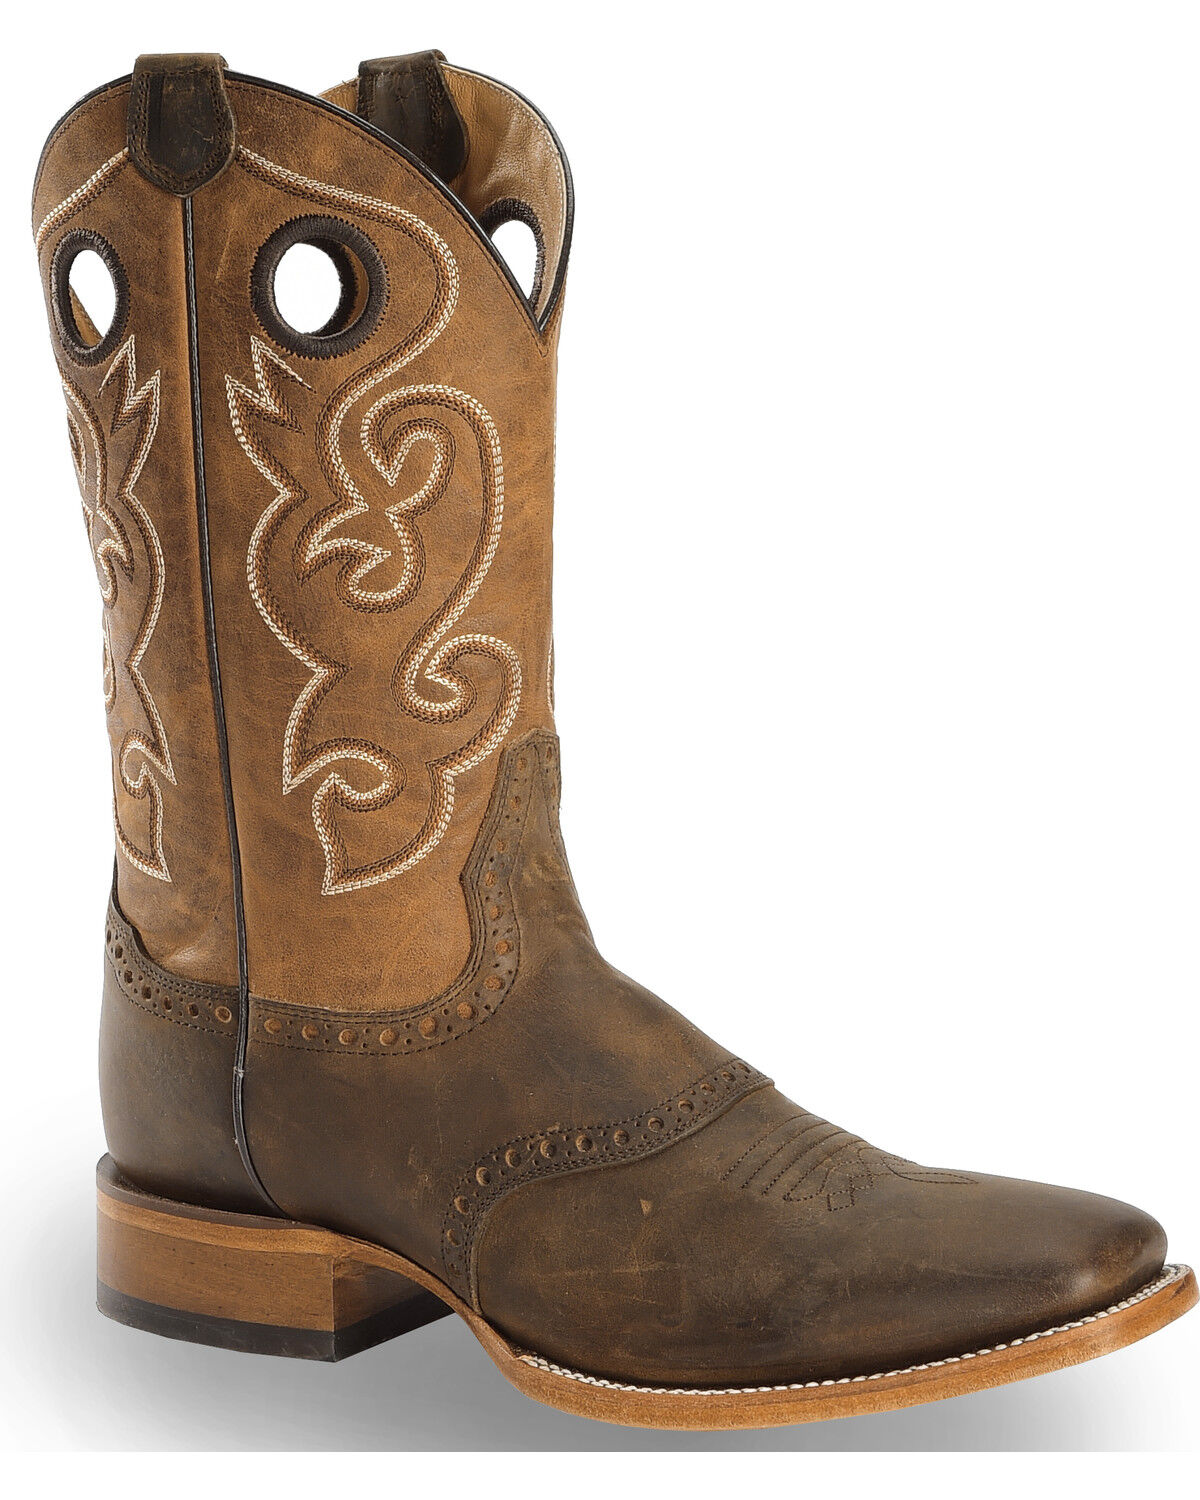 black friday deals boot barncody james men\u0027s brown saddle vamp western boots square toe